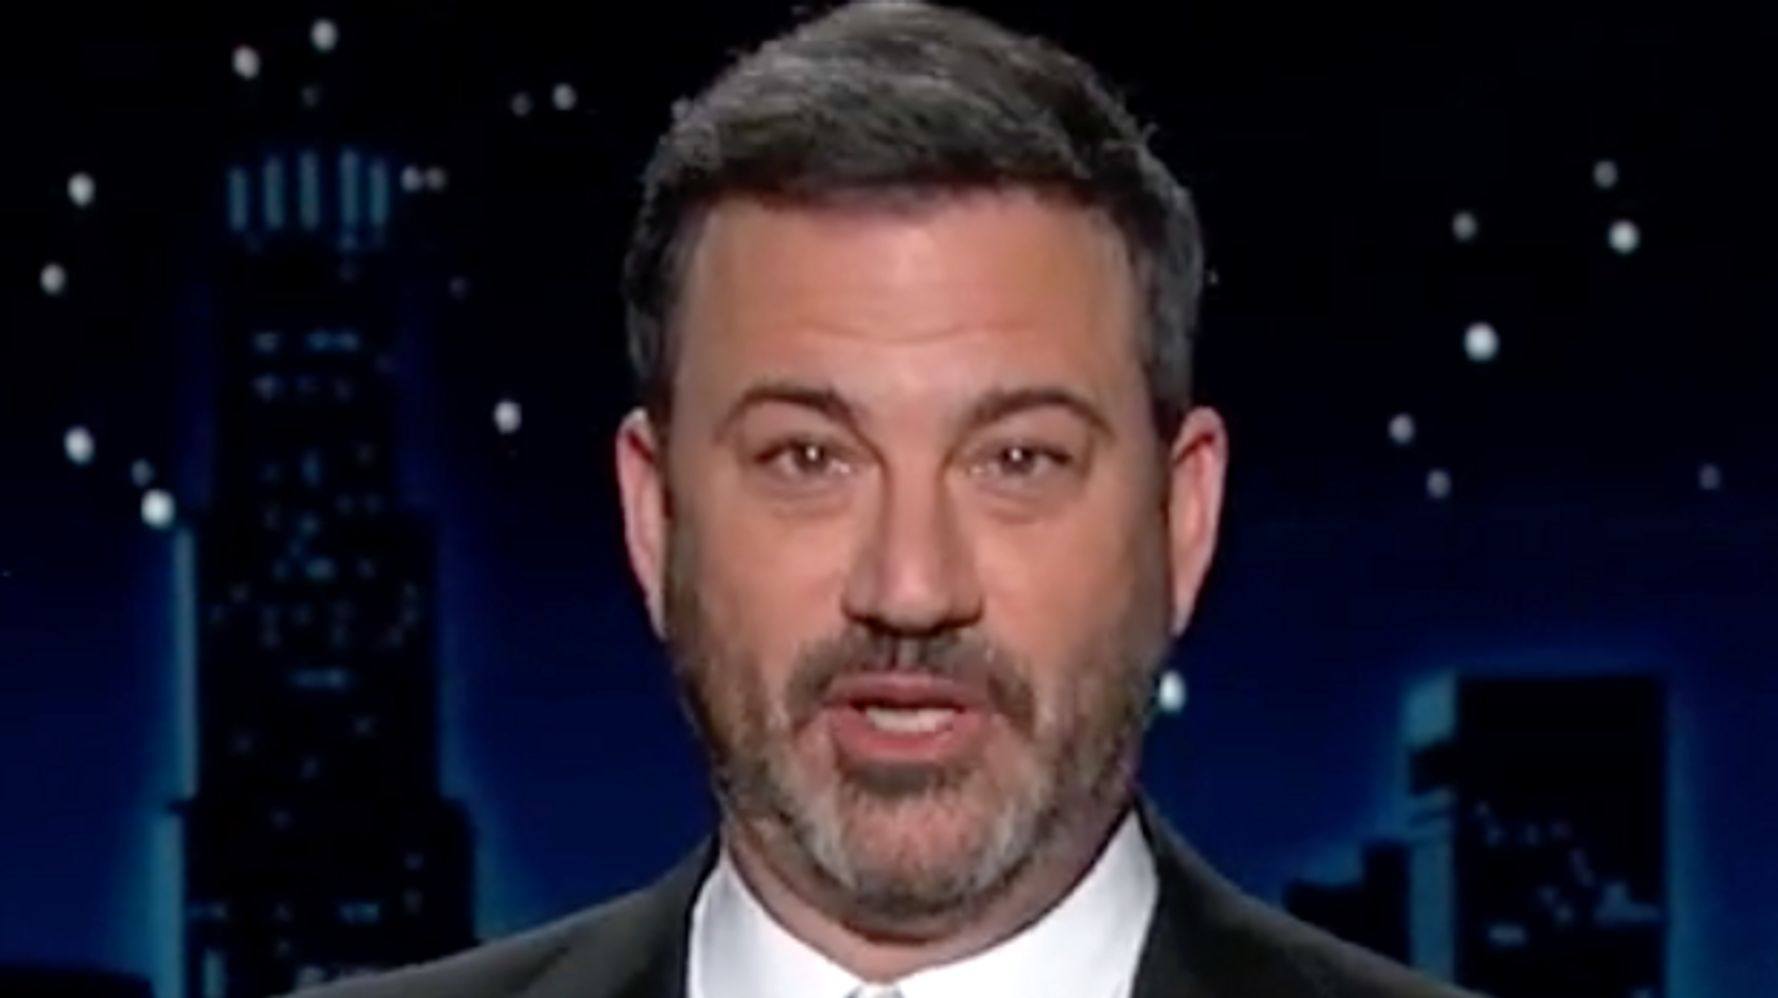 Jimmy Kimmel Names The 1 Thing Donald Trump Didn't Do In His 'Despicable' Presser